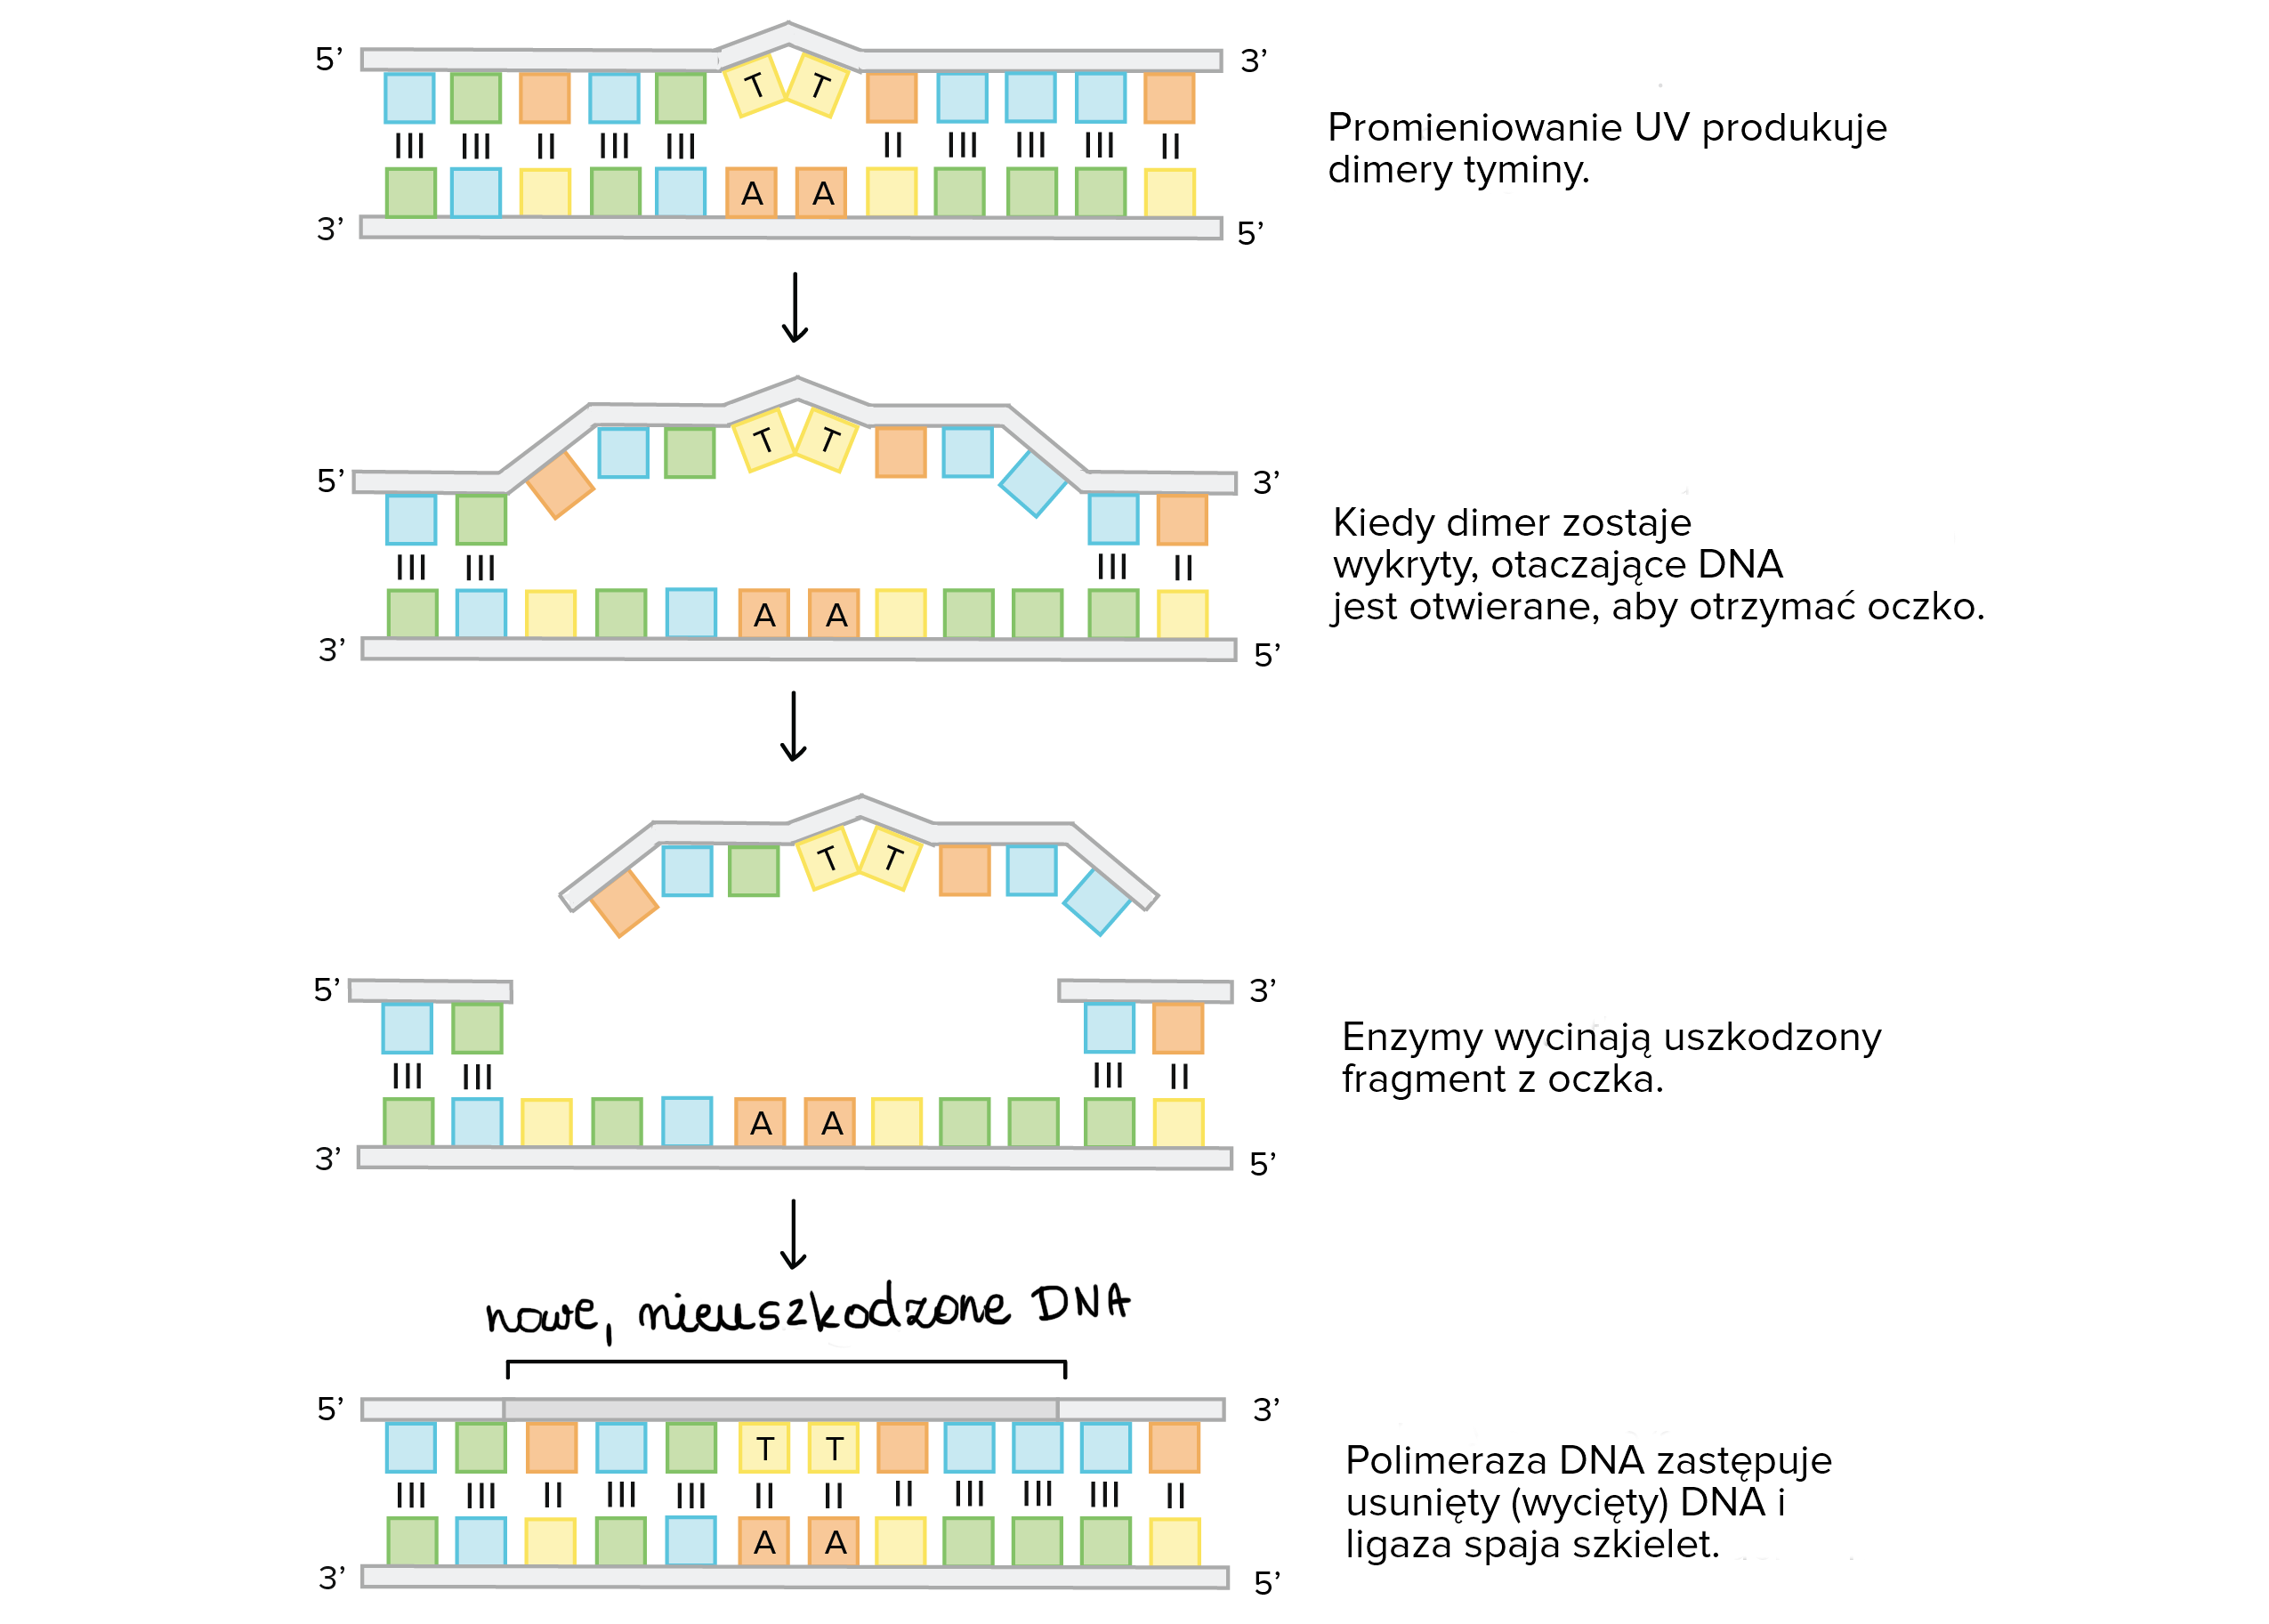 Leading and lagging strands in dna replication film khan academy ccuart Choice Image